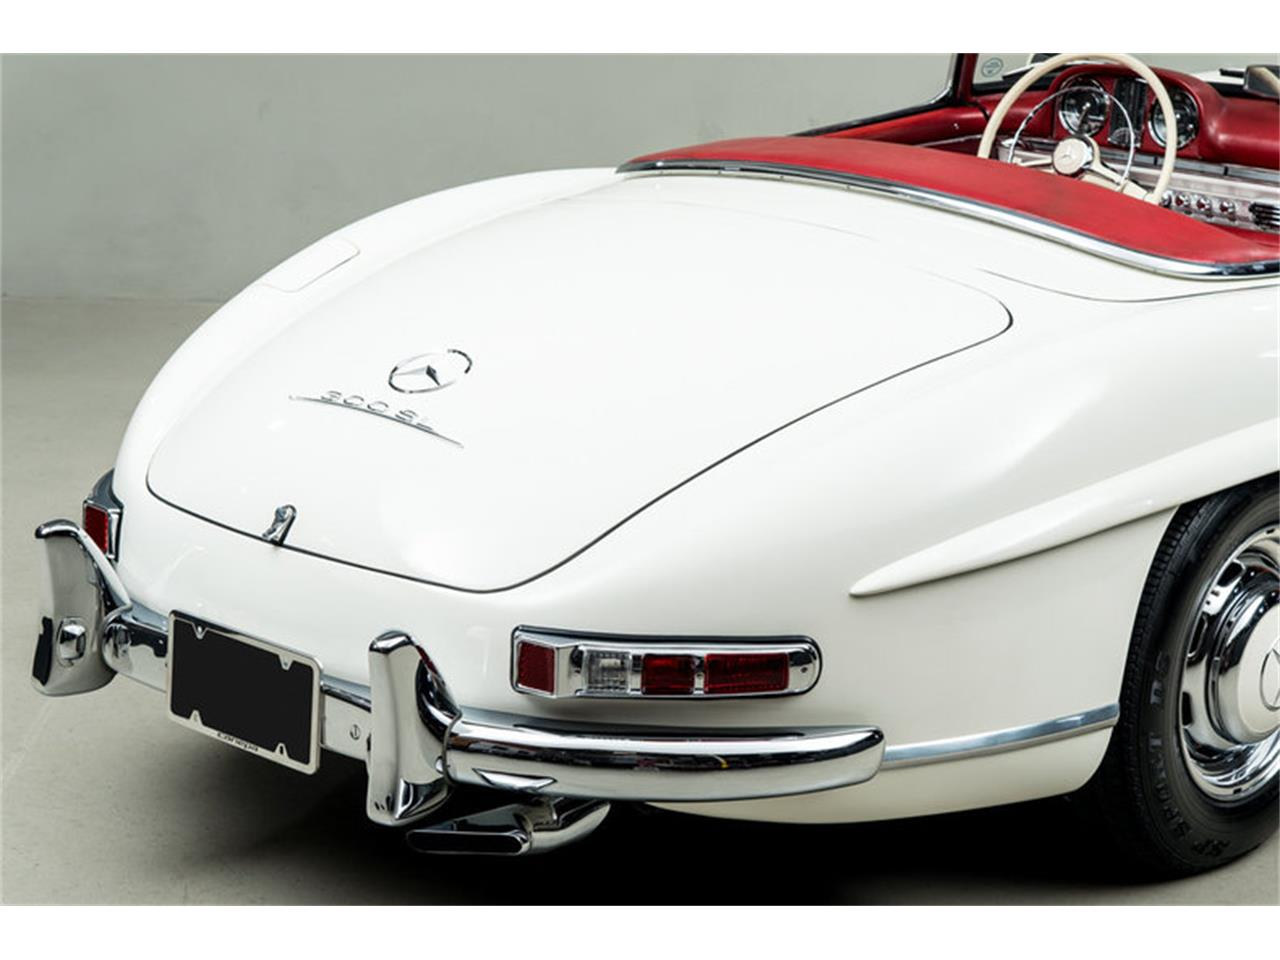 Large Picture of '63 Mercedes-Benz 300SL Roadster located in Scotts Valley California Auction Vehicle Offered by Canepa - EFPZ